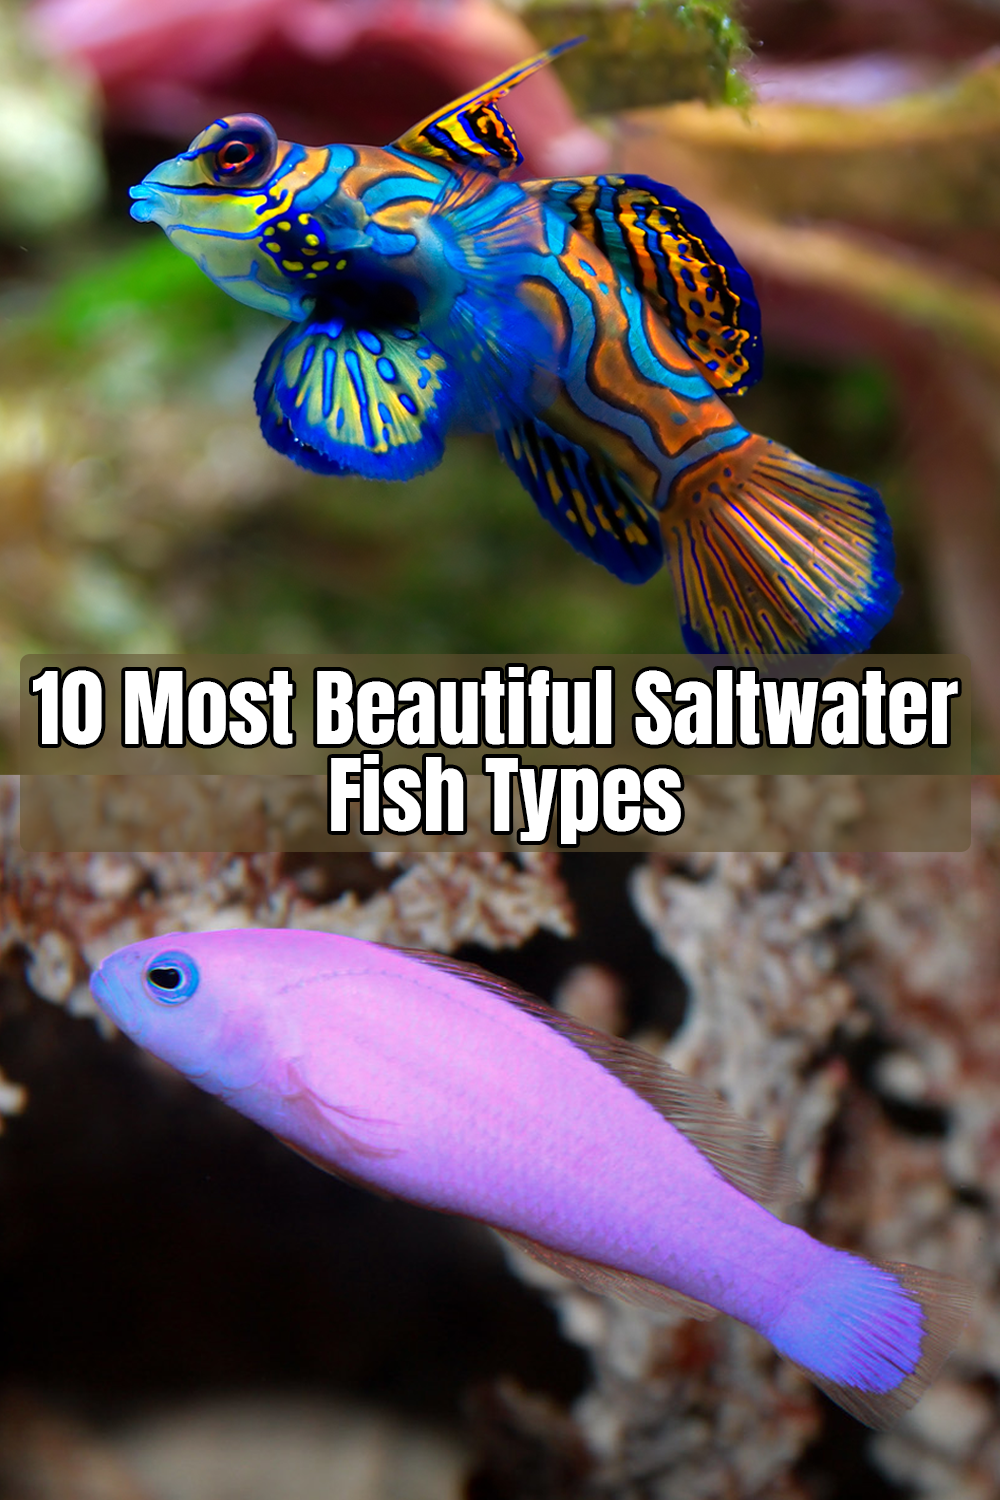 10 Most Beautiful Saltwater Fish Types Saltwater Aquarium Fish Saltwater Fish Tanks Marine Aquarium Fish